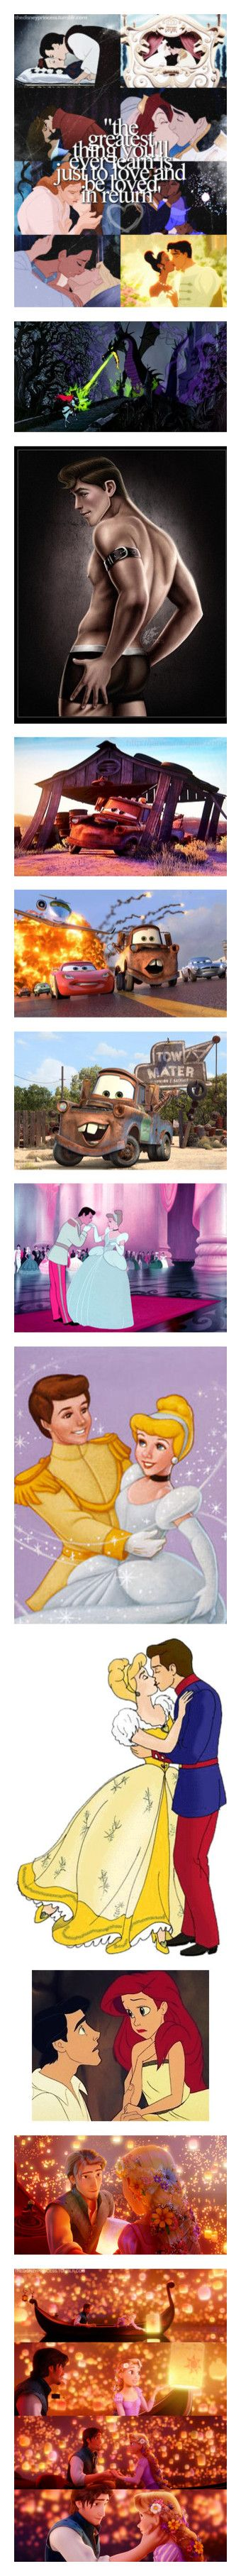 """""""Disney part.2"""" by annashreder ❤ liked on Polyvore featuring disney, backgrounds, jewelry, pendants, cinderella, prince charming, cartoon, pictures, comic book and charmed comic book"""